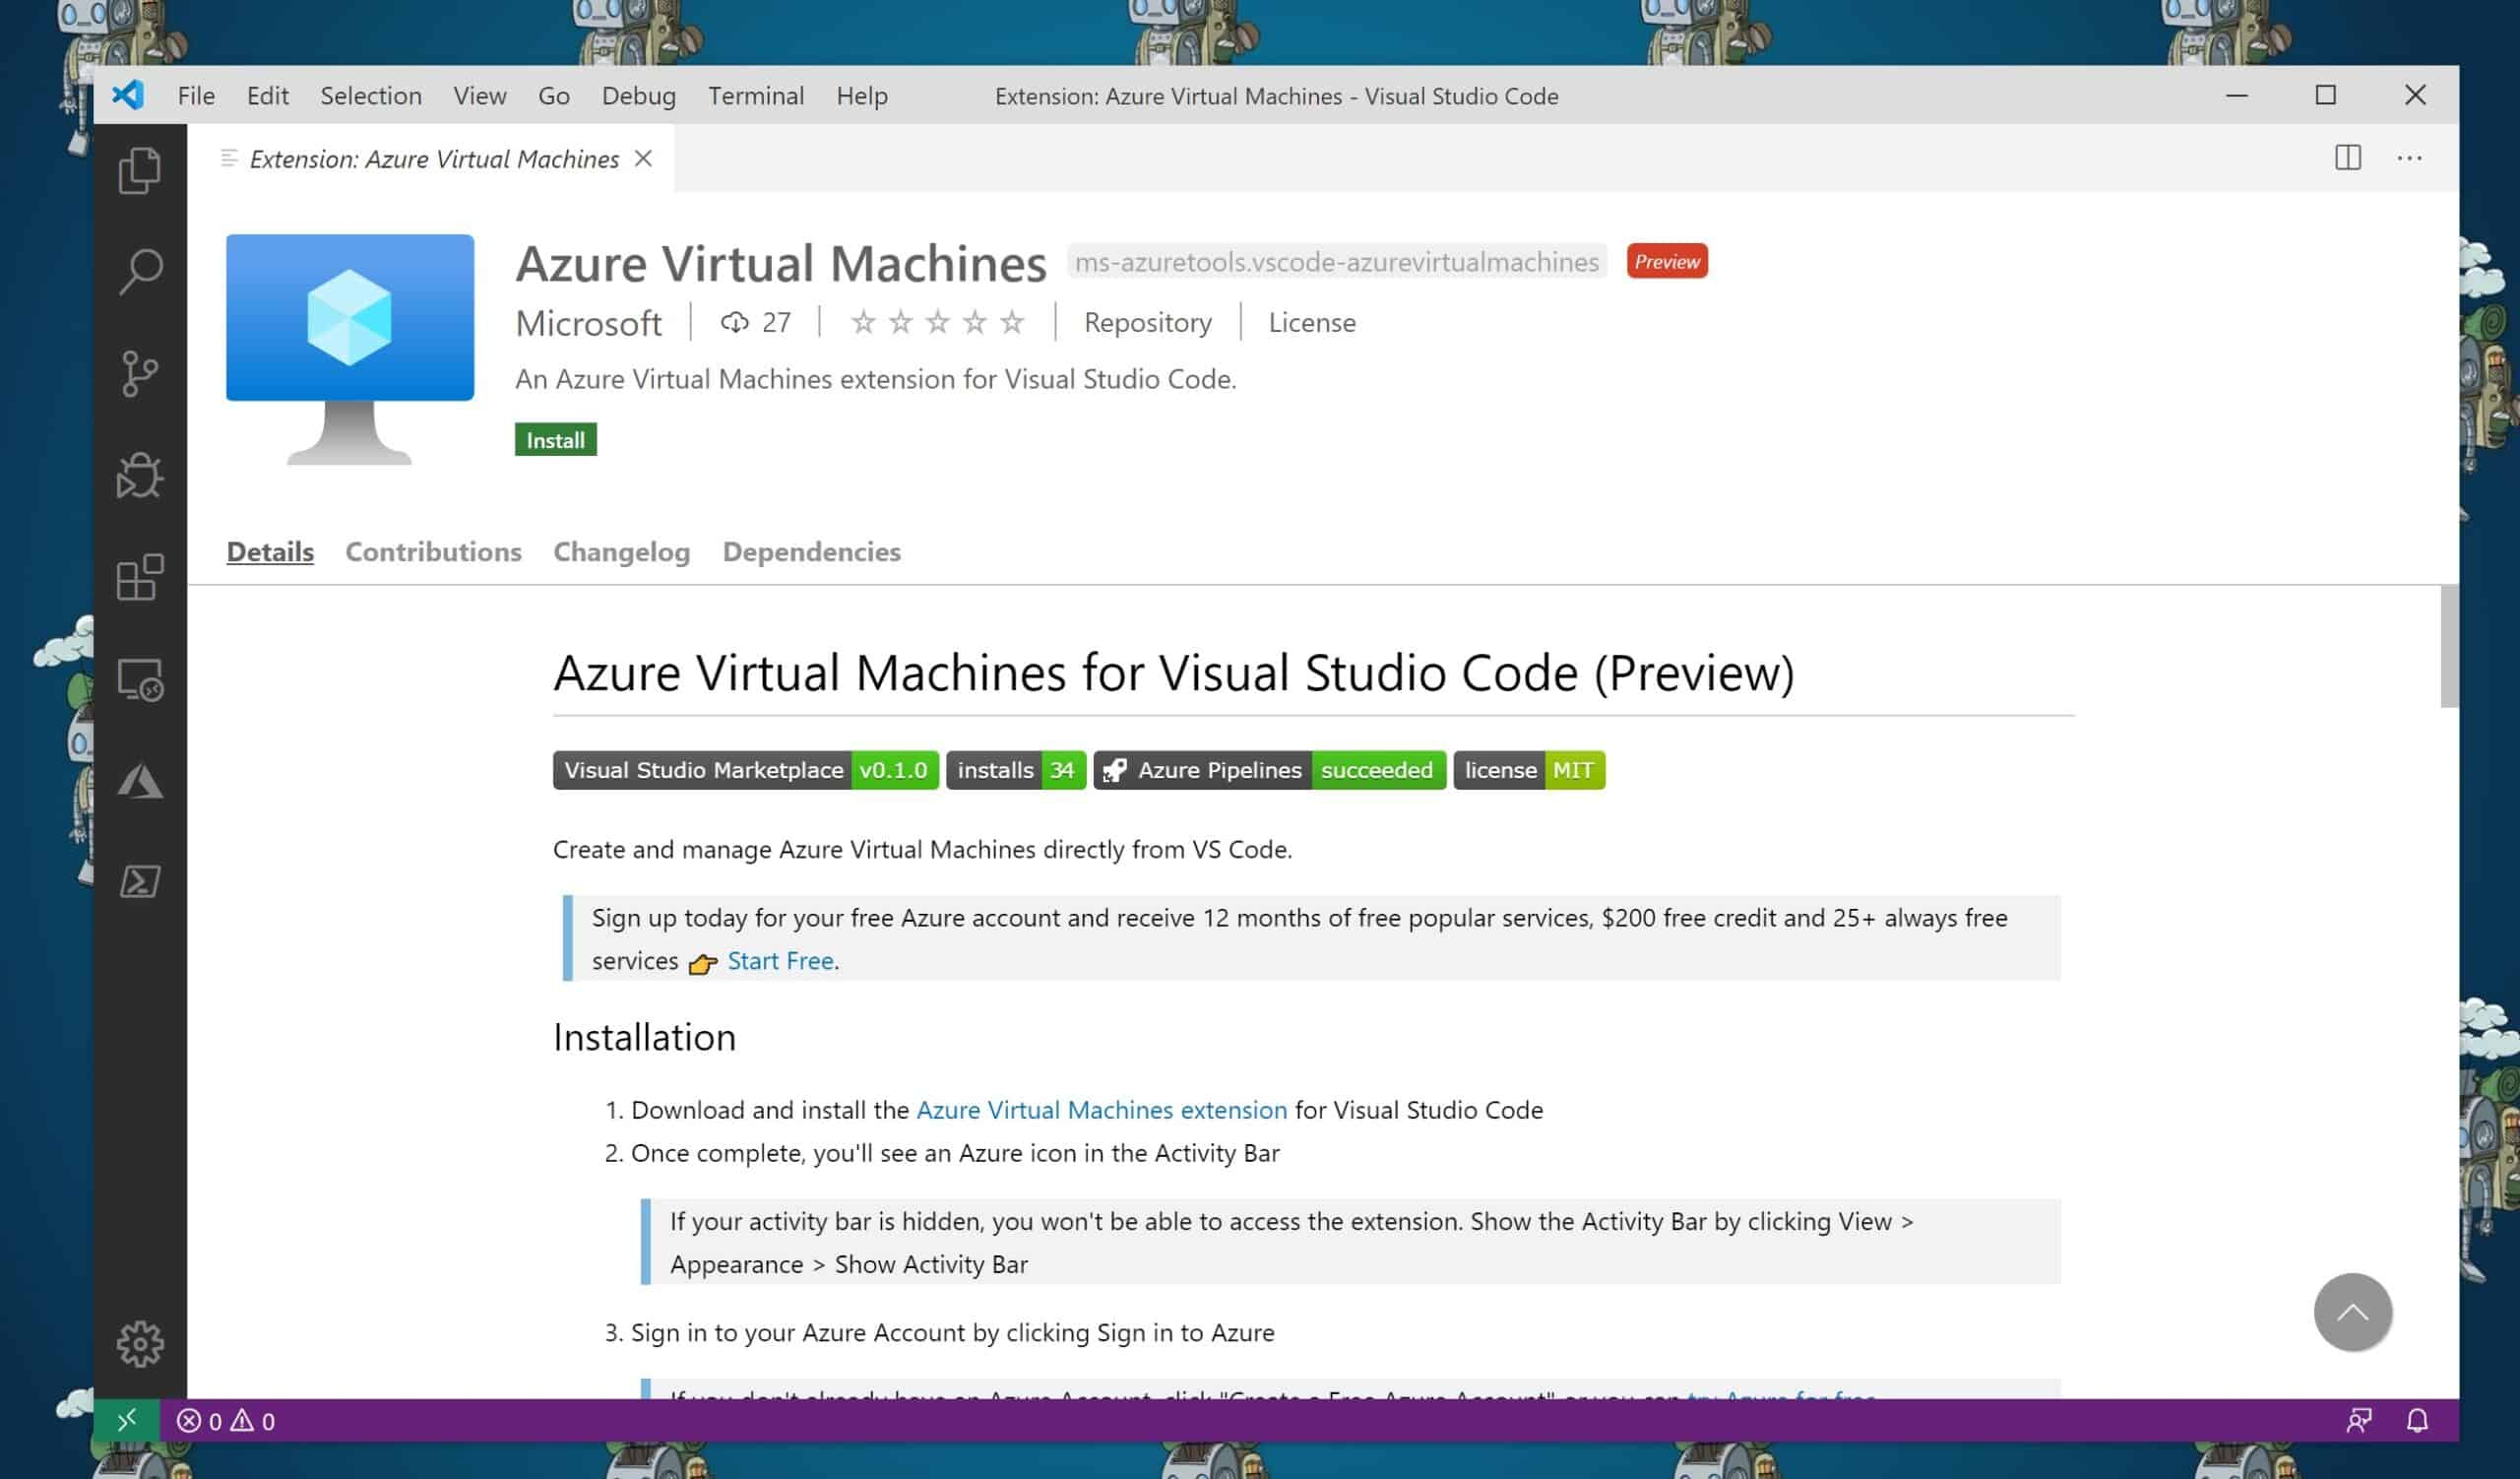 Visual Studio Code Azure Virtual Machines Extension